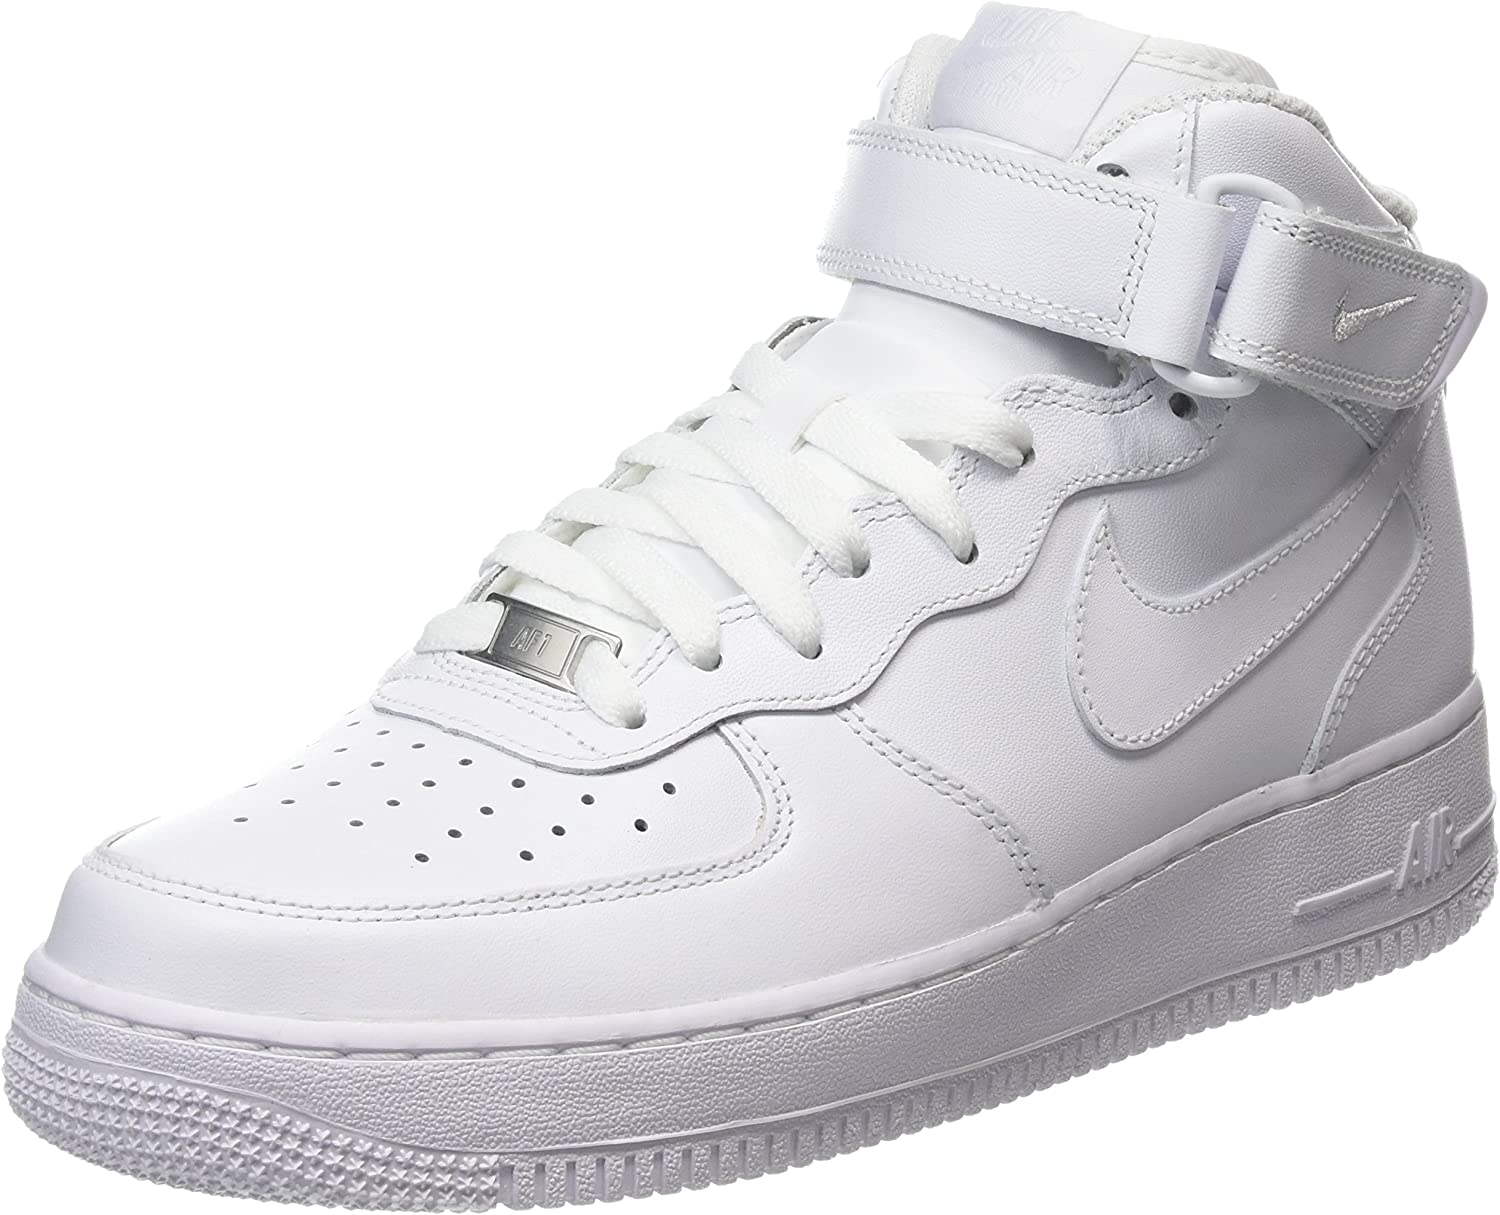 Murmullo Viajero Conceder  Amazon.com | Nike Women's Air Force 1 MID '07 Leather White 366731-100 (5  B(M) US) | Basketball